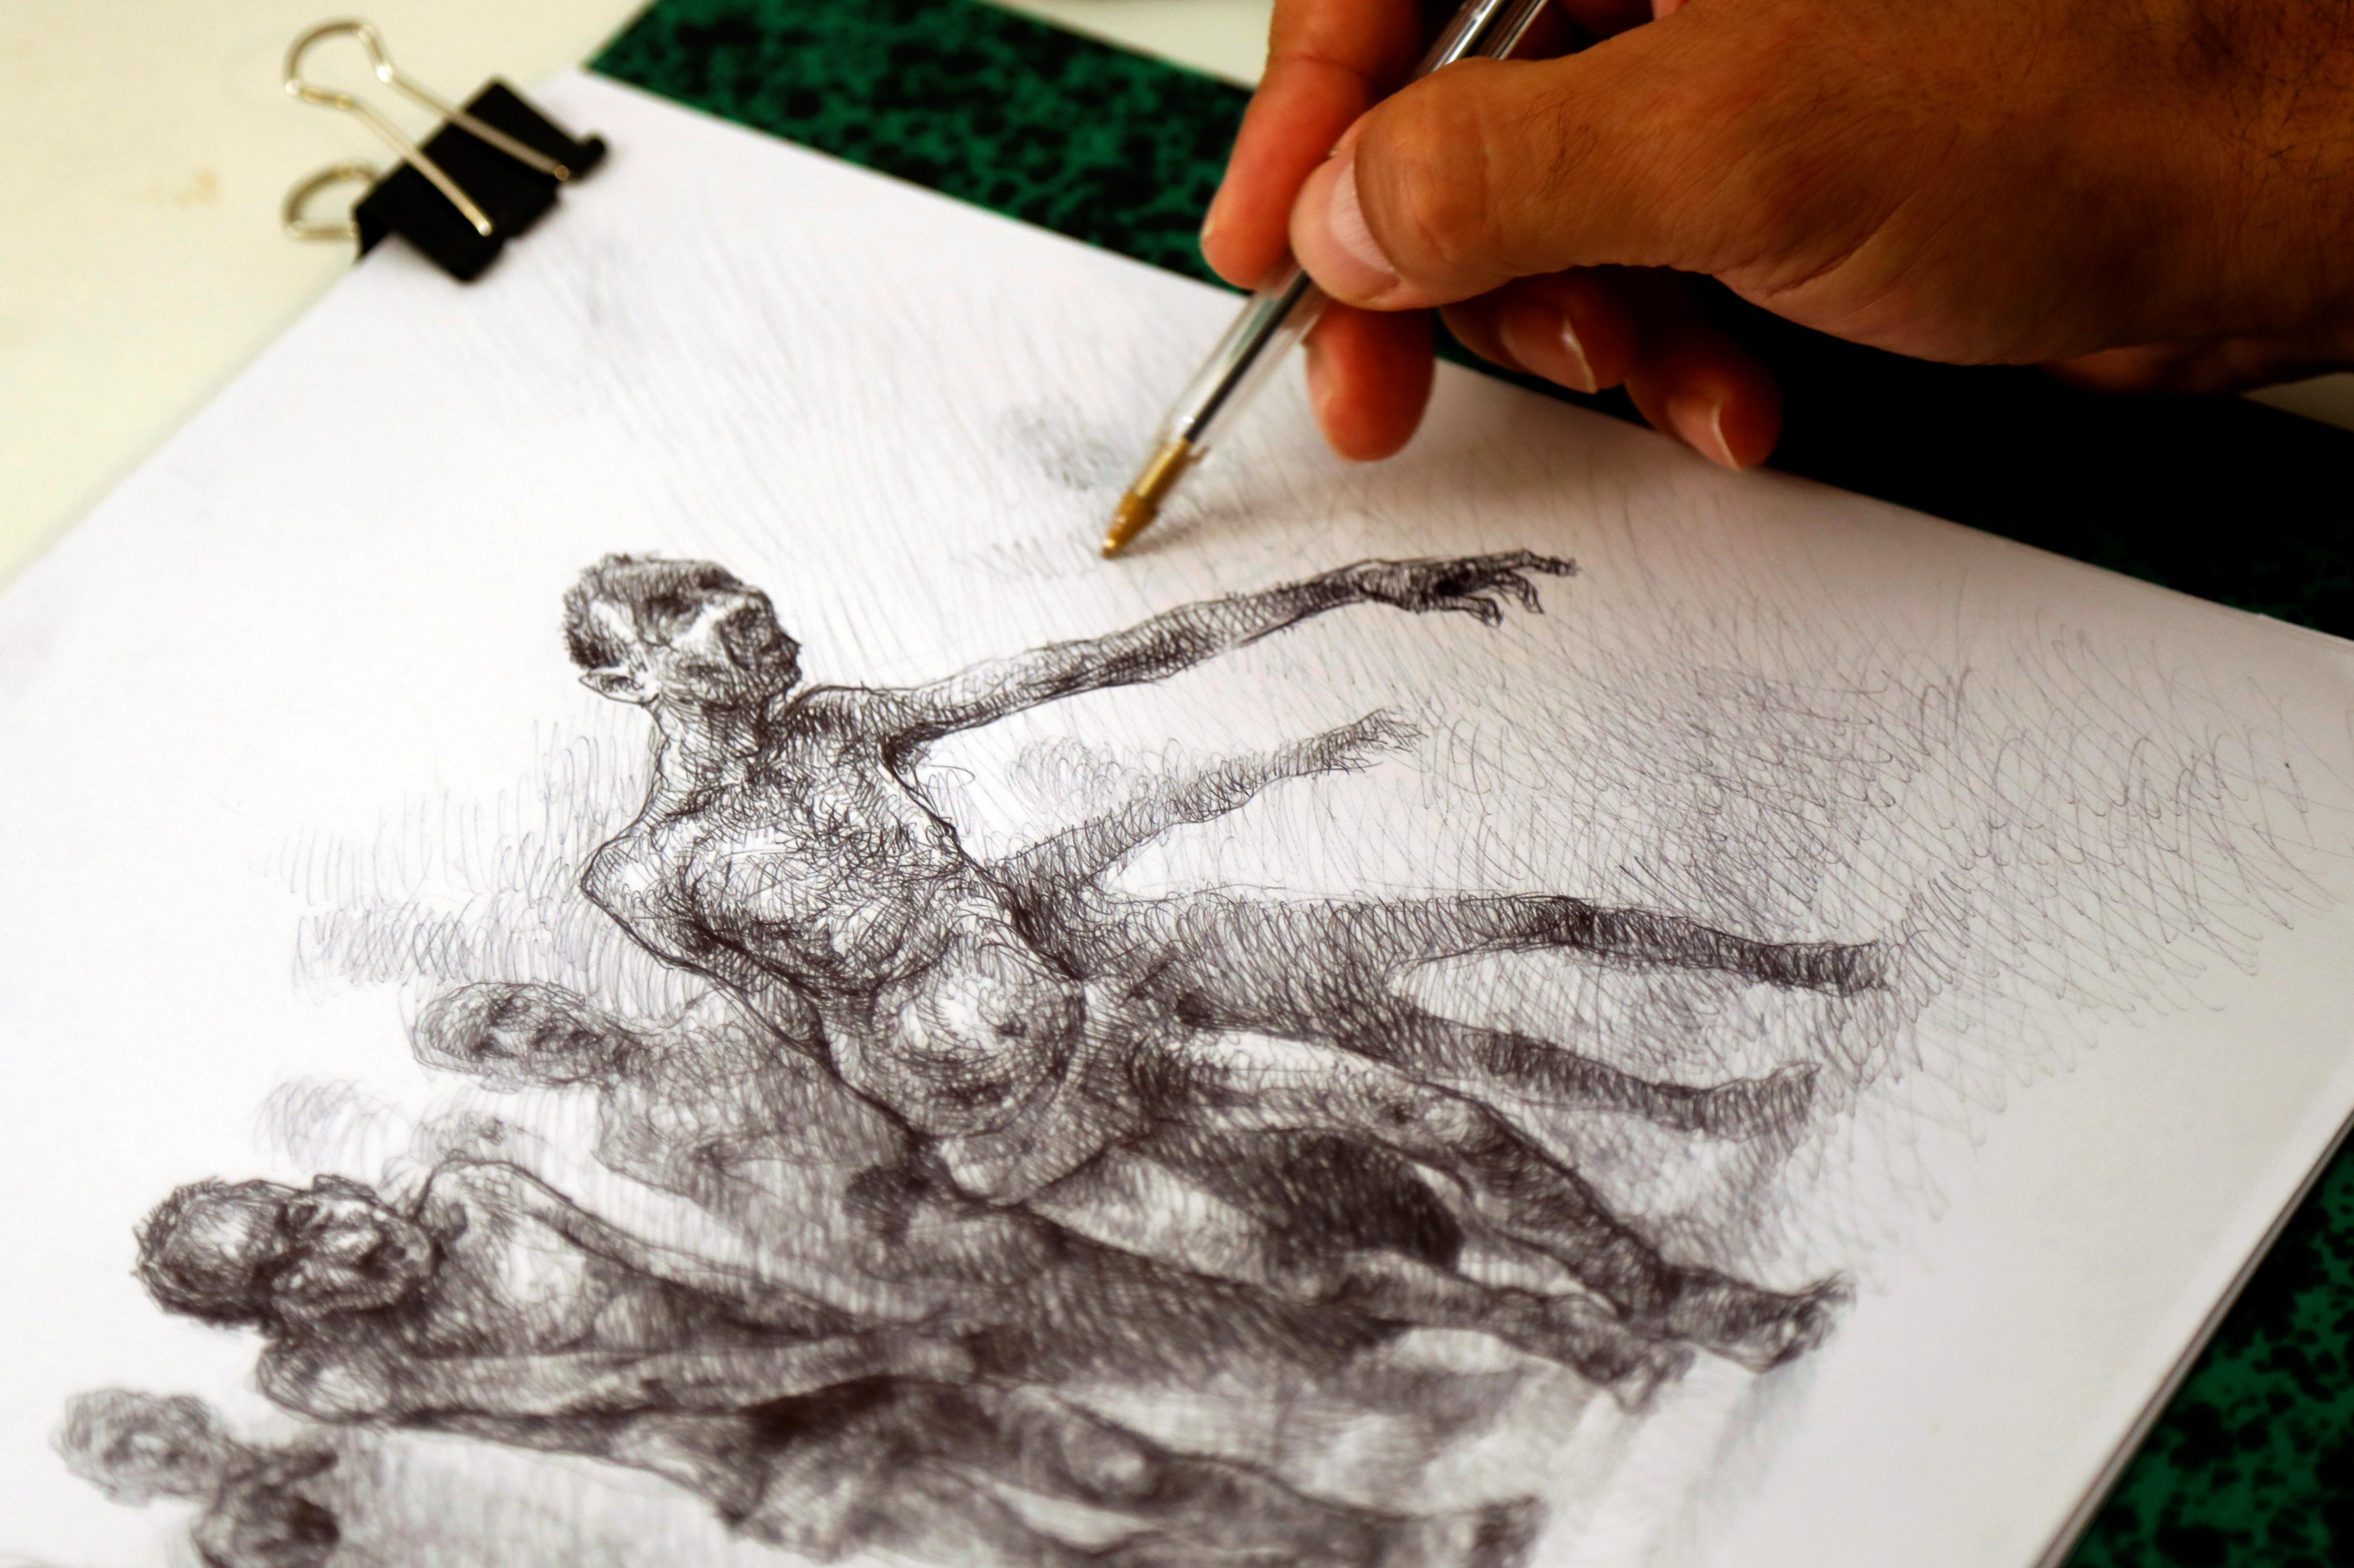 Exiled Syrian Artist Draws Torture To Continue The